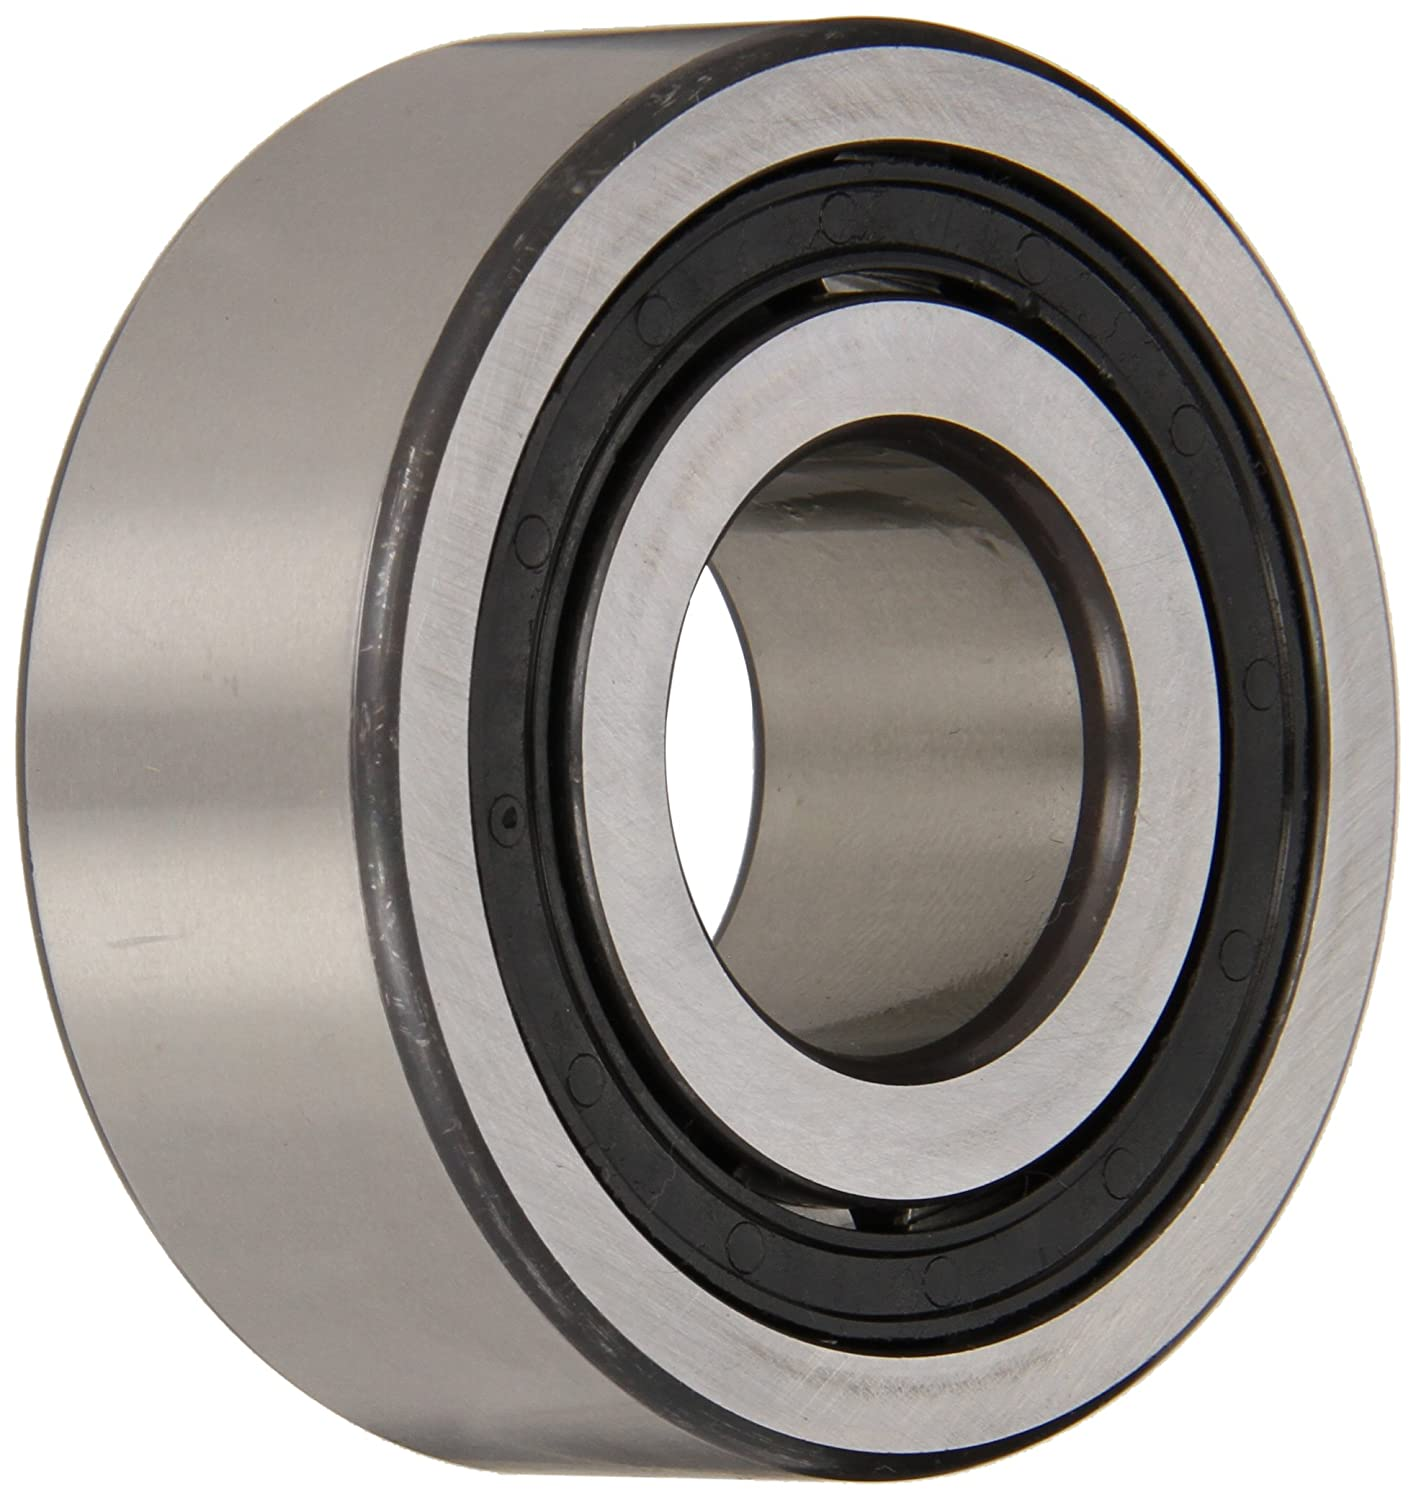 Normal Clearance Flanged Removable Inner Ring Metric High Capacity 340mm OD FAG NJ238E-M1 Cylindrical Roller Bearing 190mm ID Straight Bore 55mm Width Schaeffler Technologies Co. Single Row